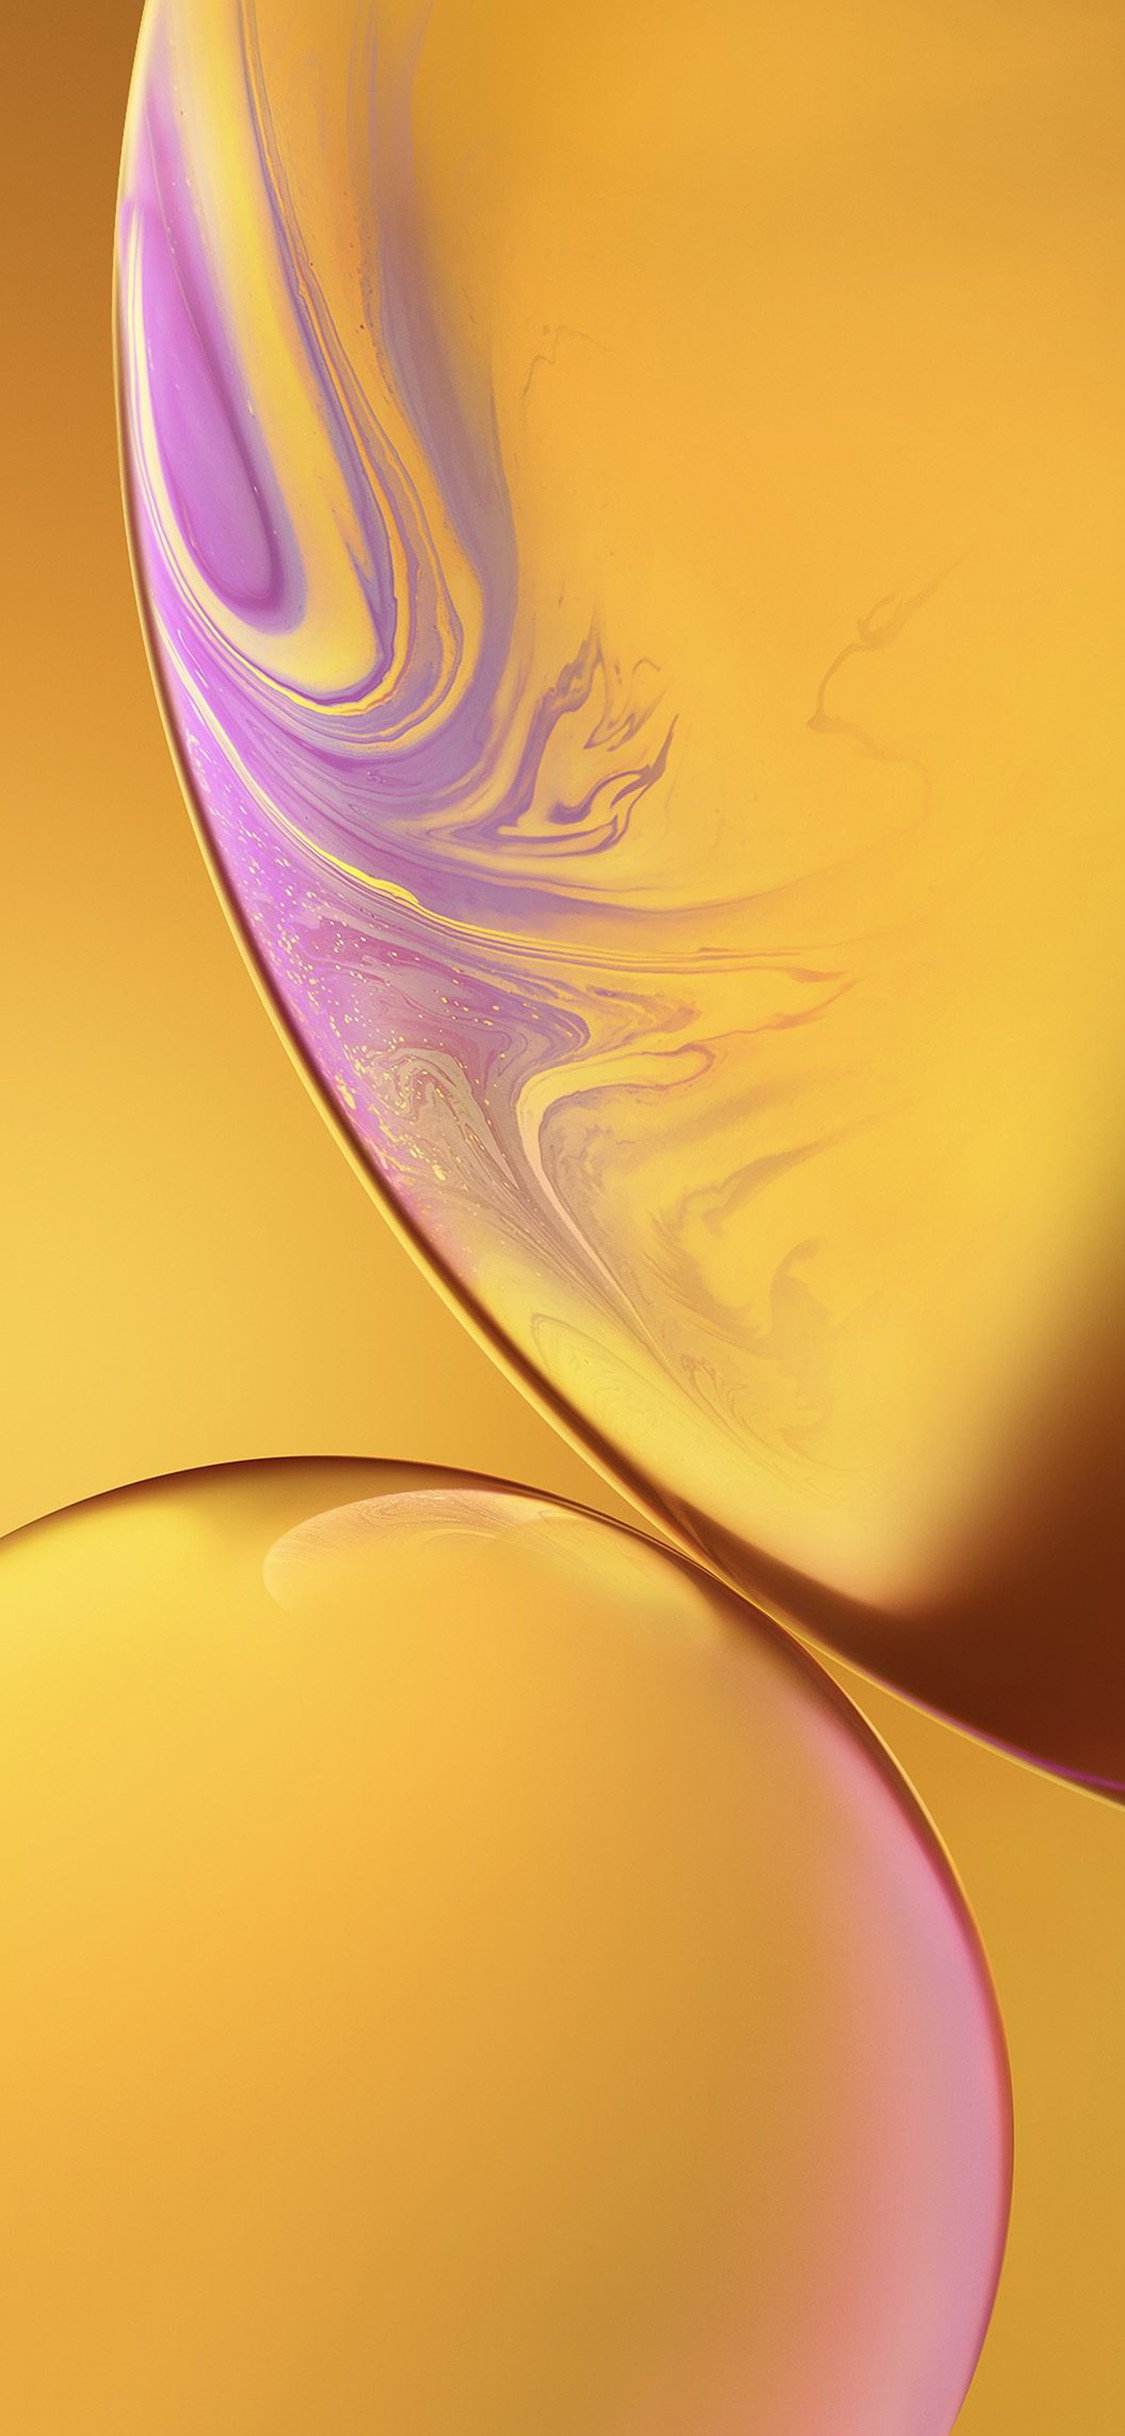 iPhonexpapers.com-Apple-iPhone-wallpaper-bg35-iphone-xs-max-apple-official-art-yellow-bubble